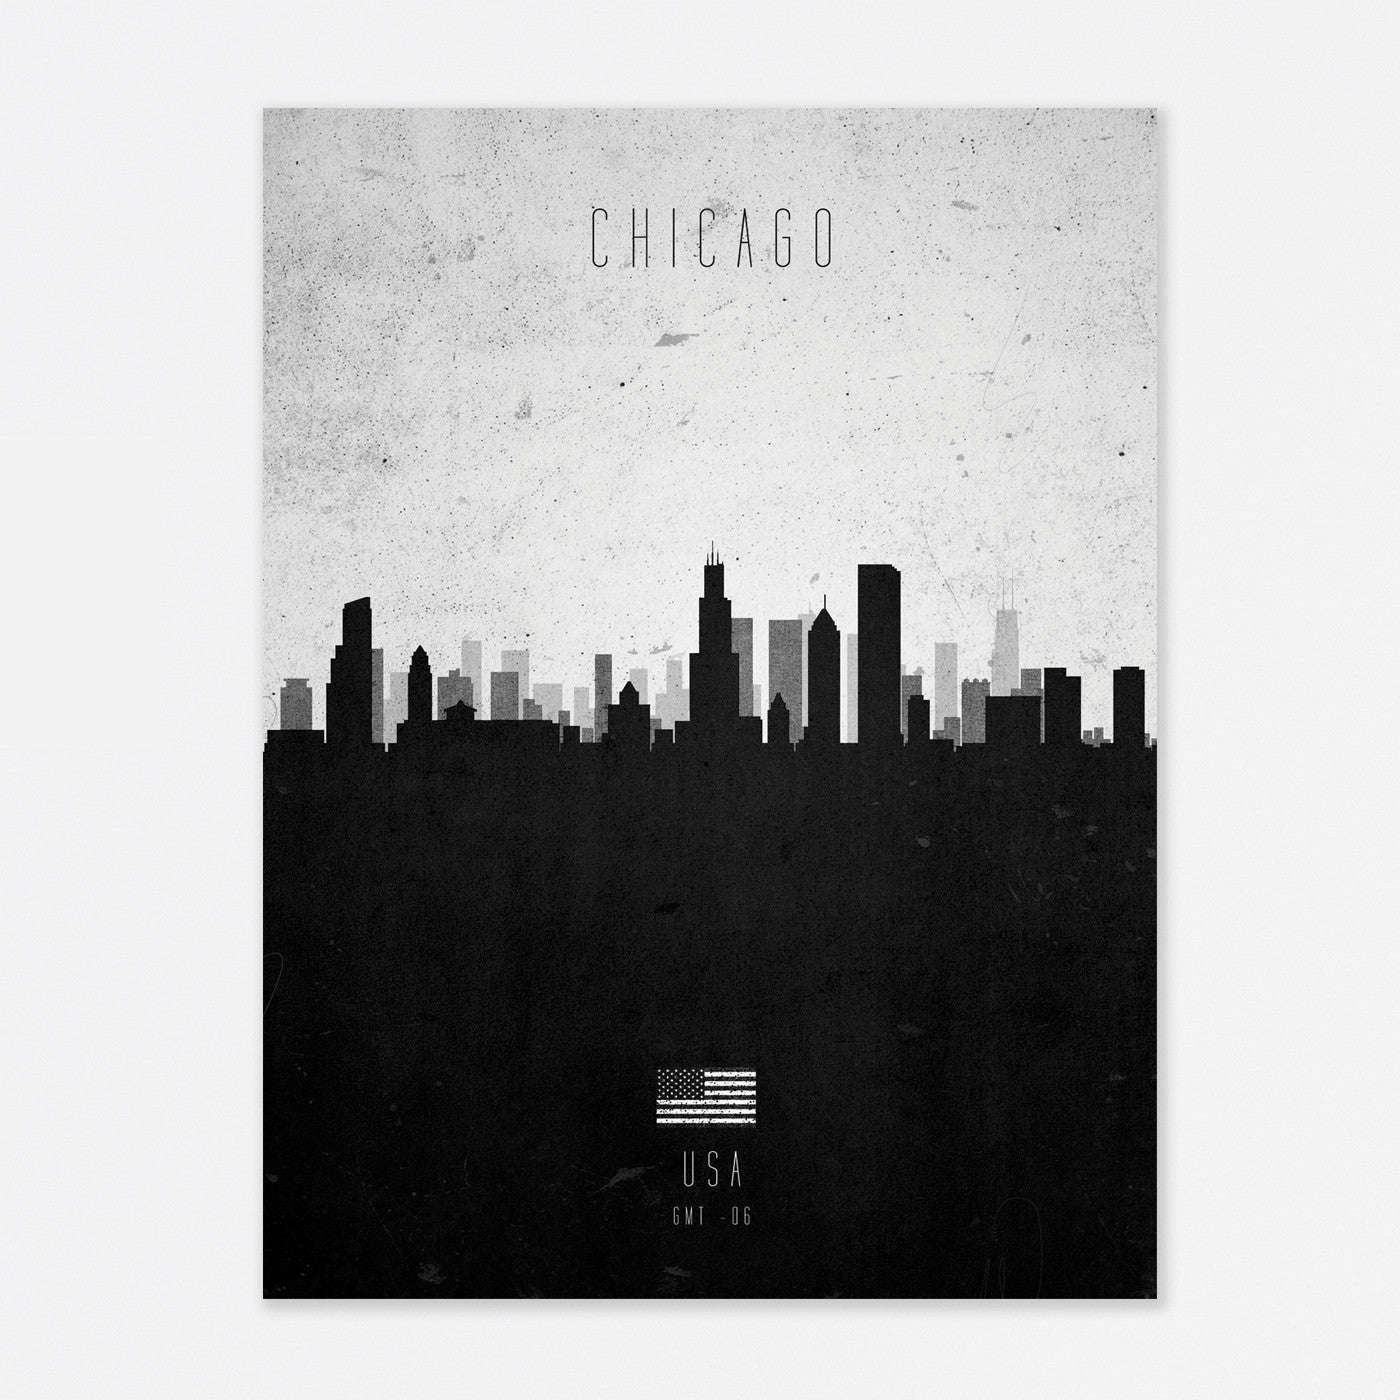 Chicago: GMT -06